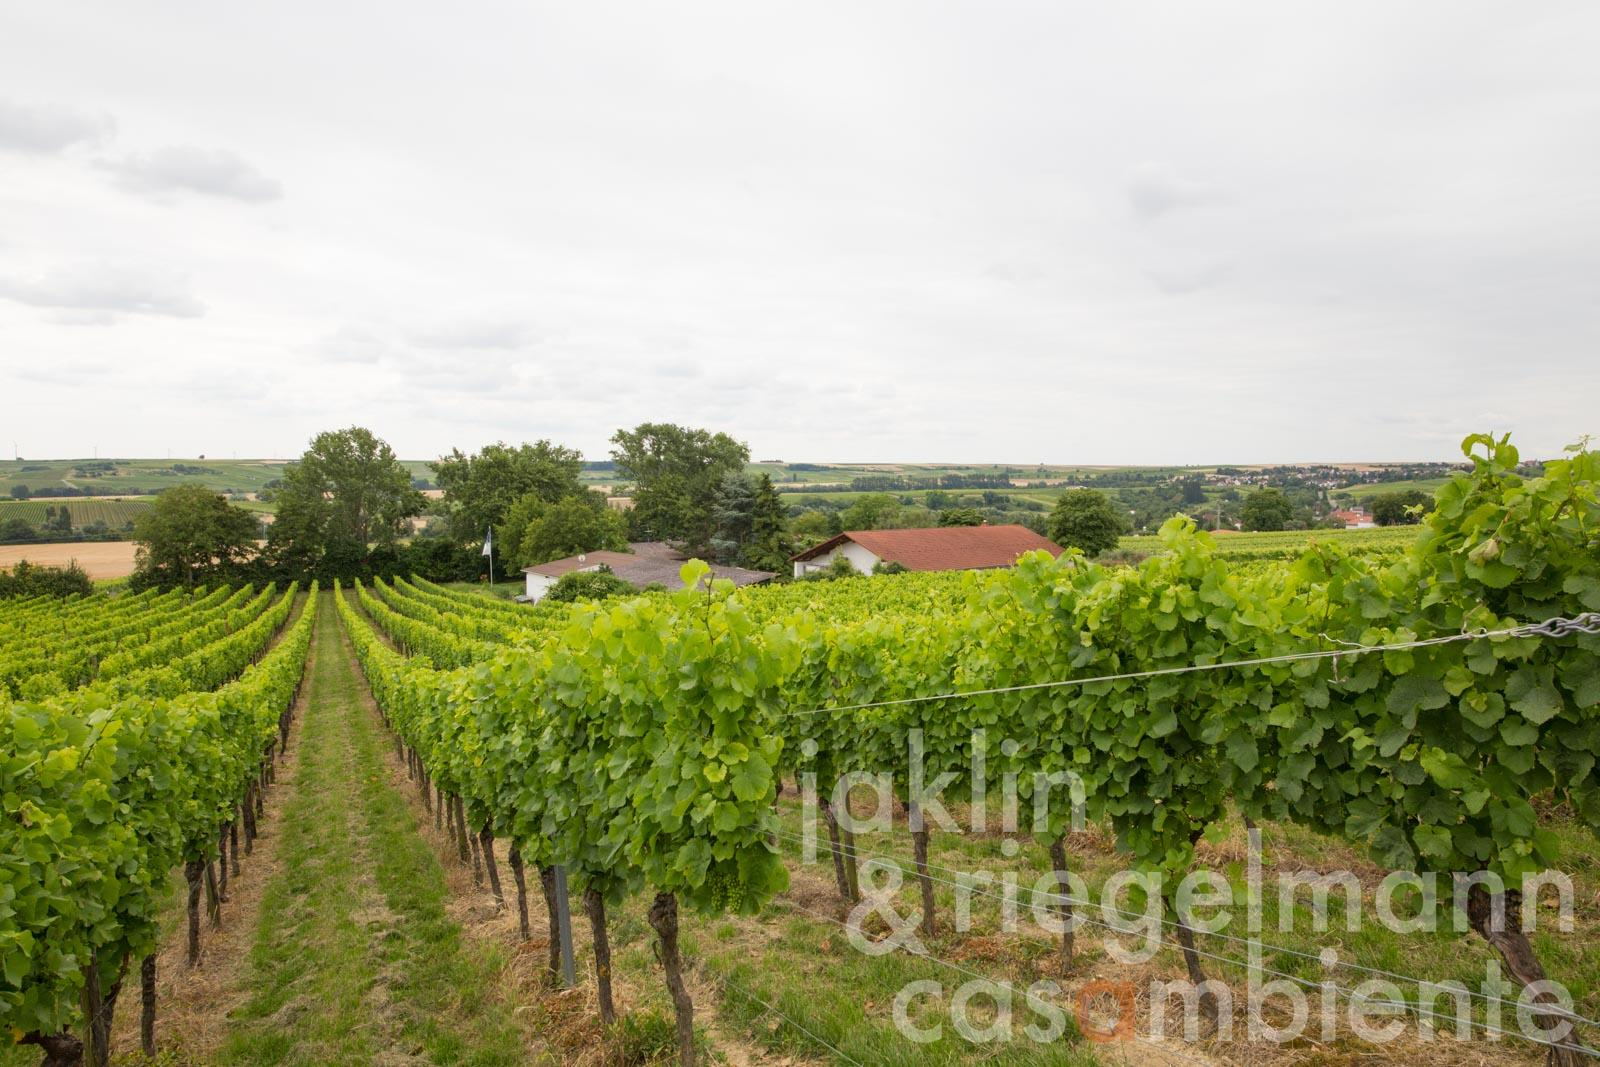 The well-established German winery for sale in Rhine-Hesse with a good track record and several awards